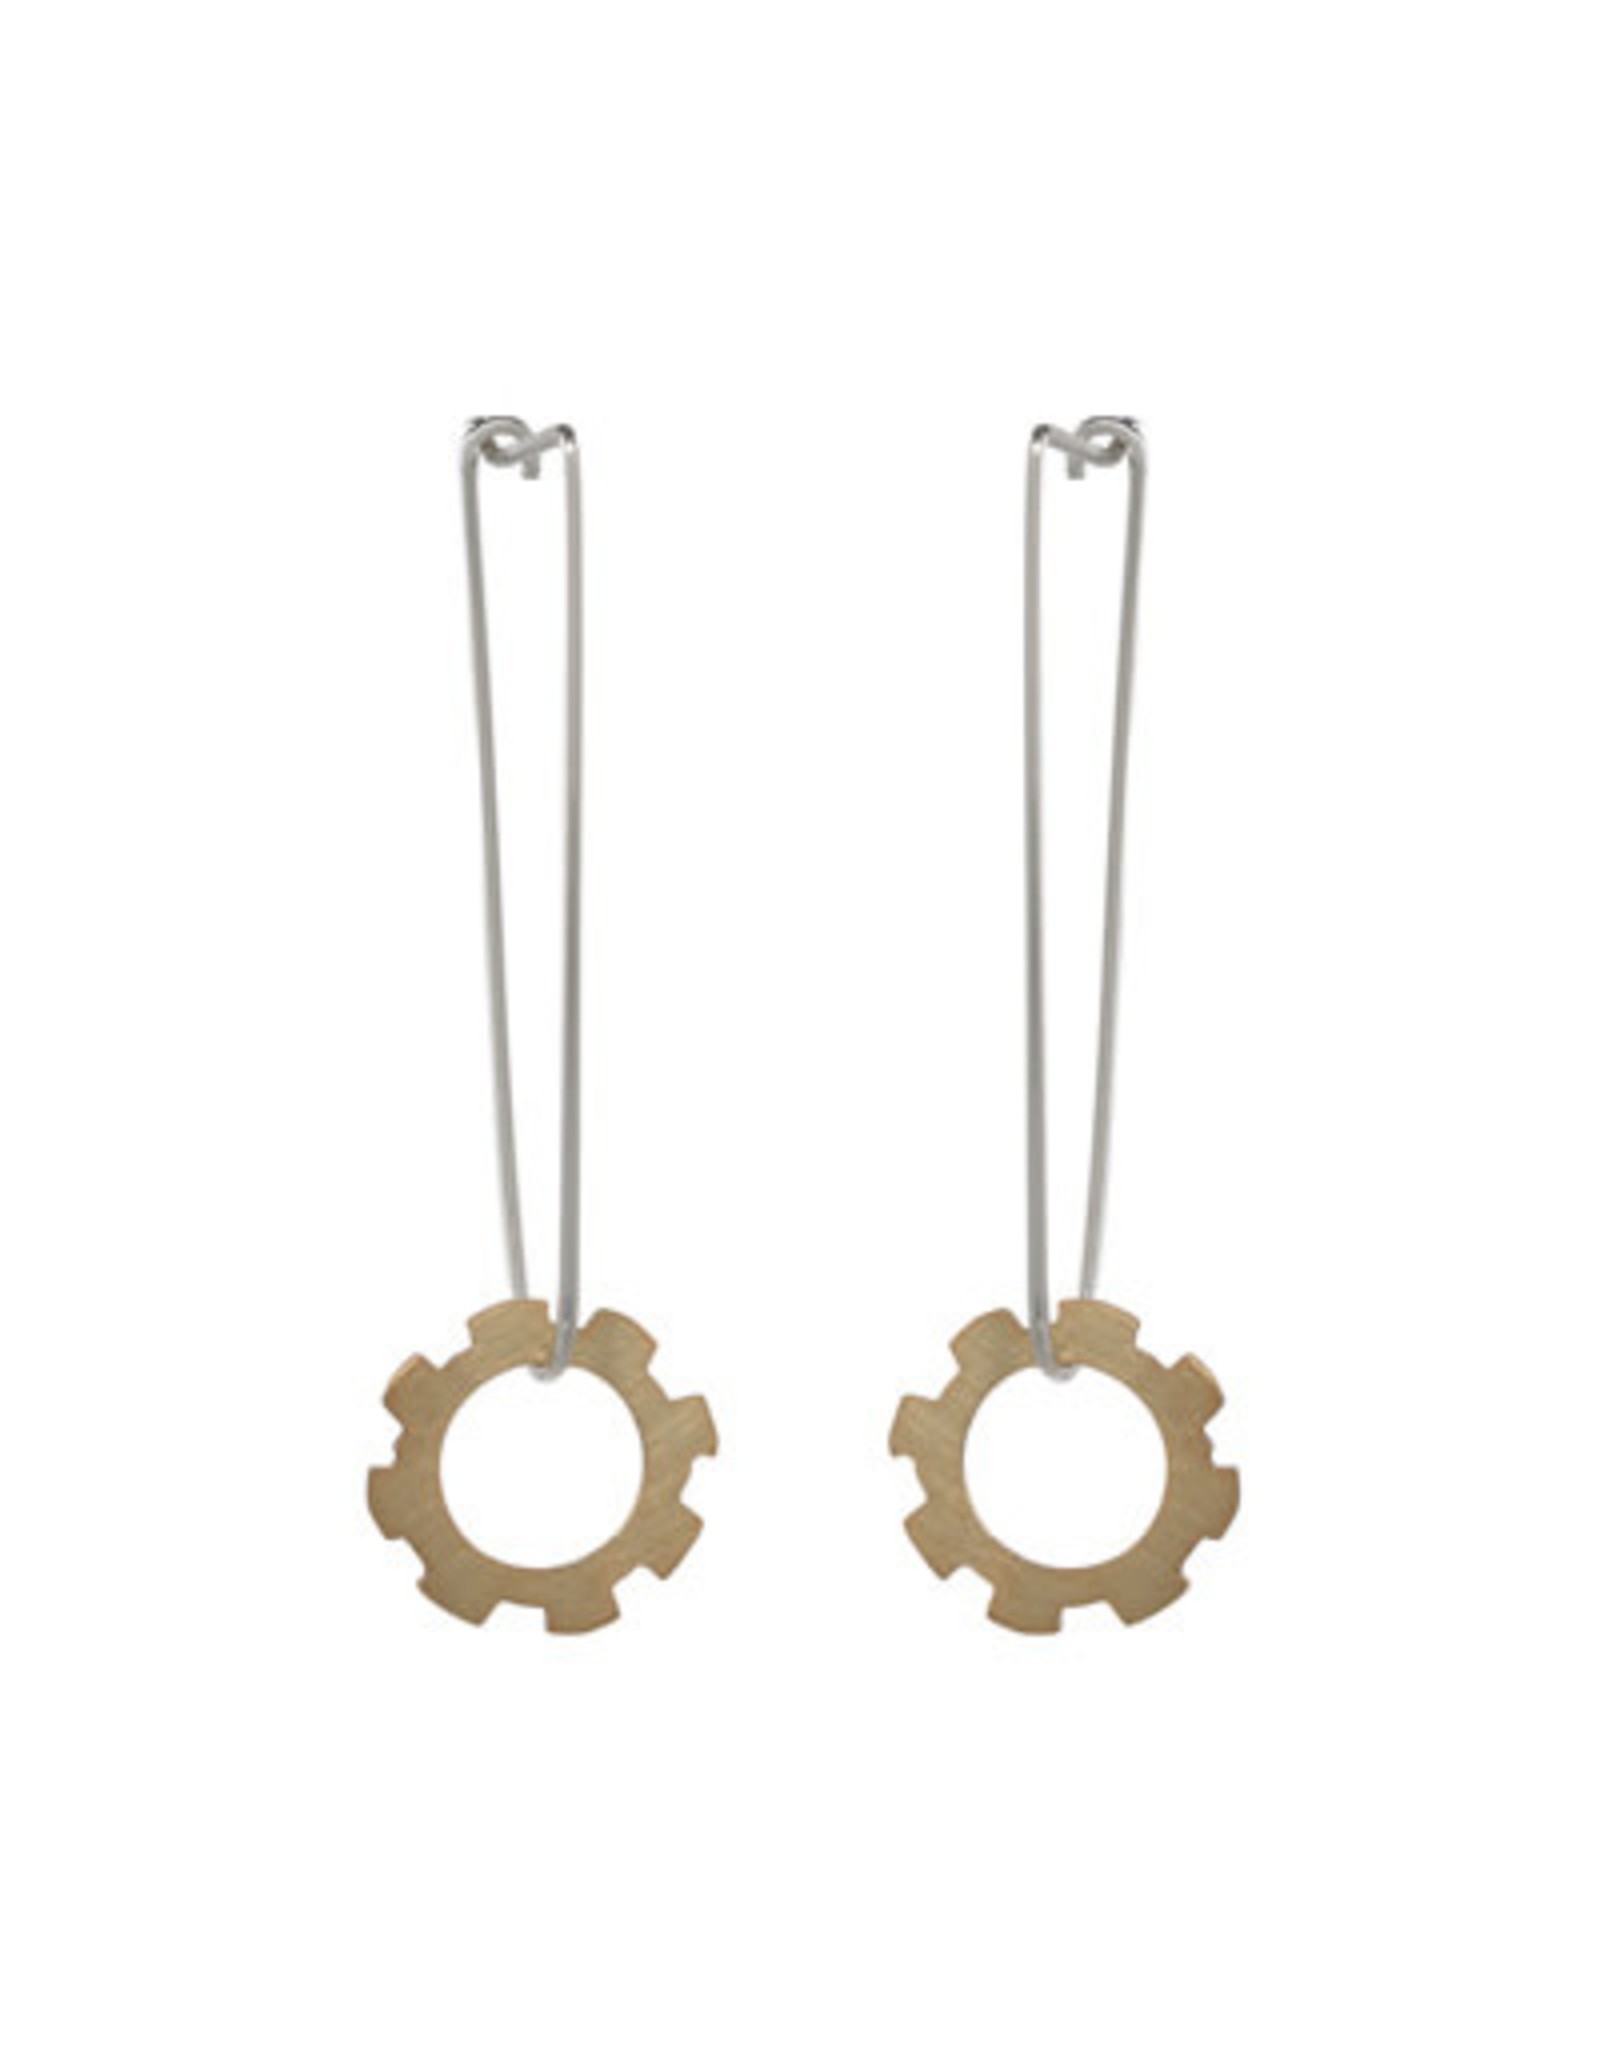 Activating Gold Dipped Earring Wire